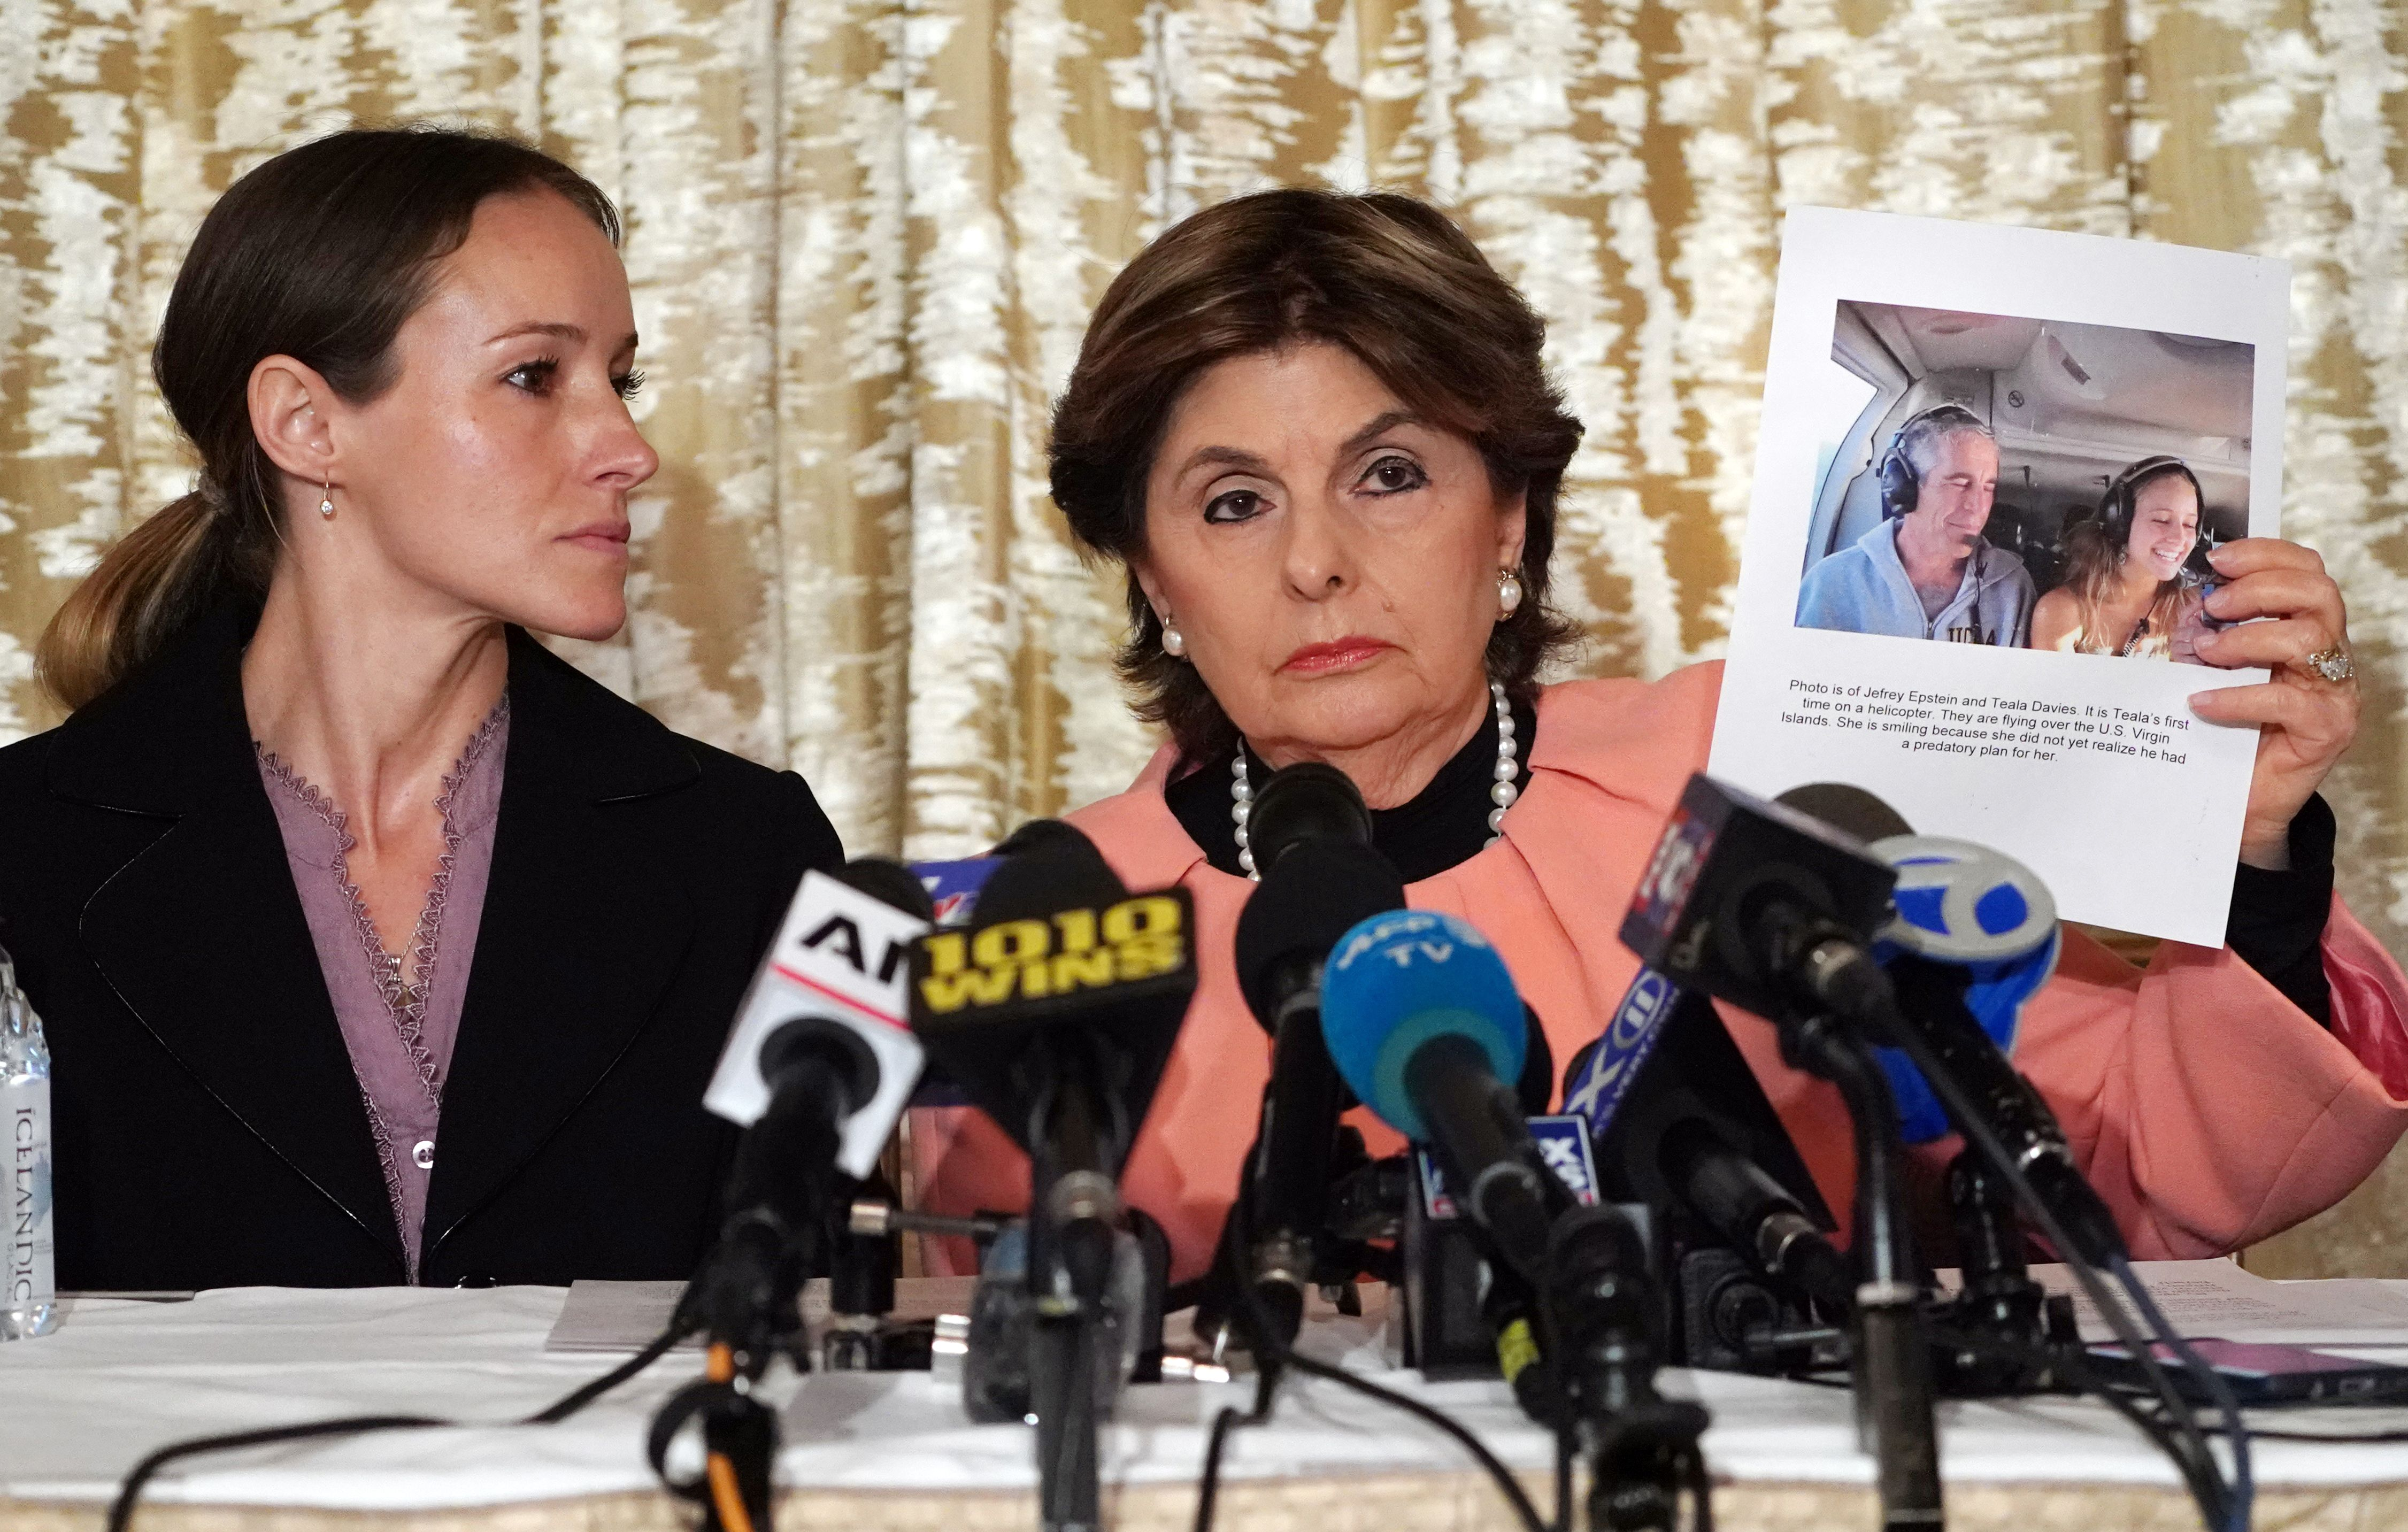 Attorney Gloria Allred (R) and her client Teala Davies, who claims to be a victim of sexual abuse by Jeffrey Epstein when she was a minor, hold a press conference in New York City. (TIMOTHY A. CLARY/AFP via Getty Images)